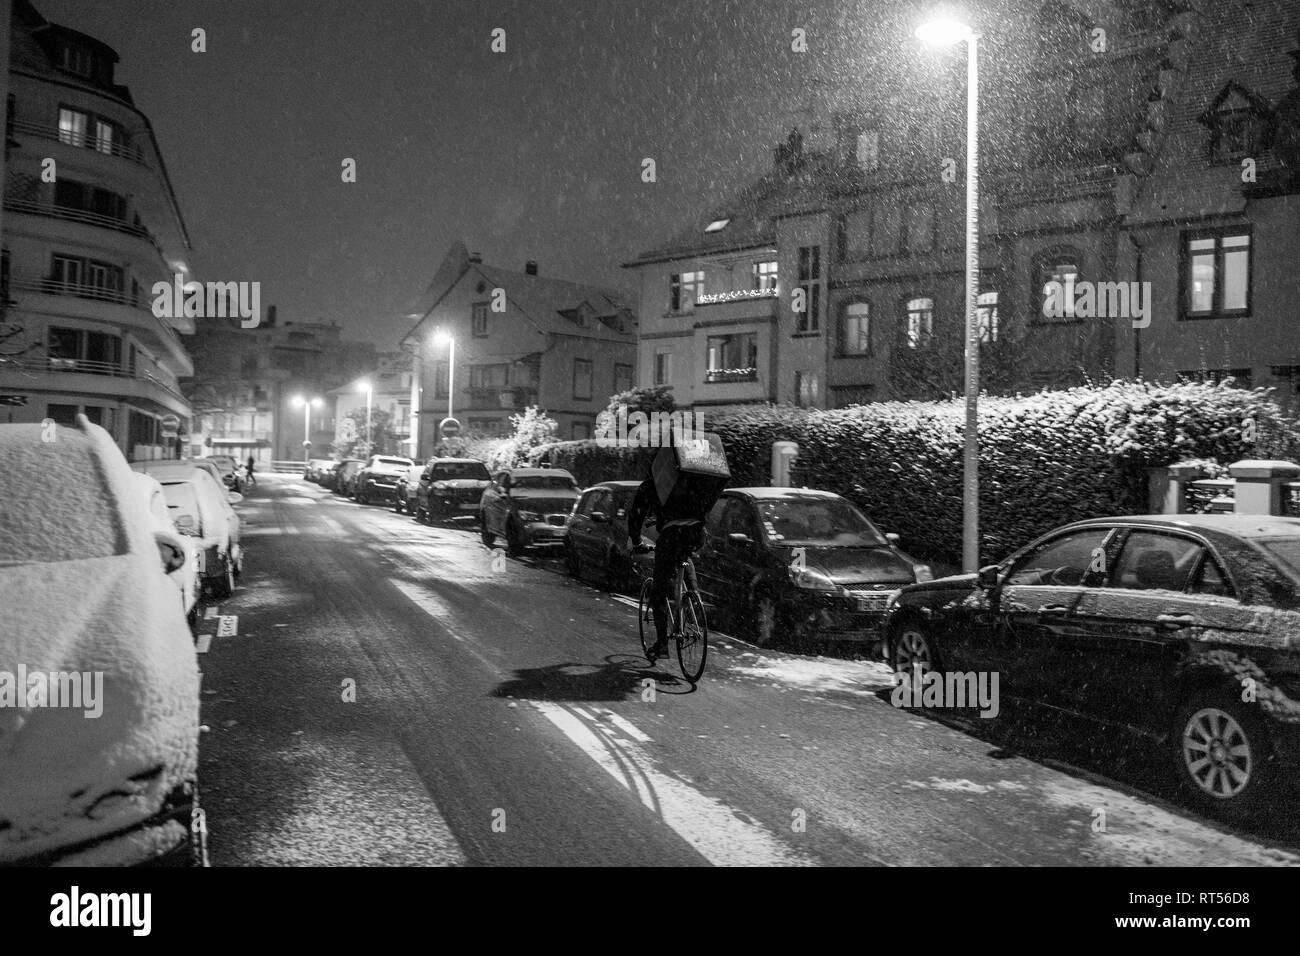 STRASBOURG, FRANCE - DEC 3 2017: Deliveroo delivery bike in French city cycling fast for food delivery on time on a cold winter snowy night in residential neighborhood - Stock Image